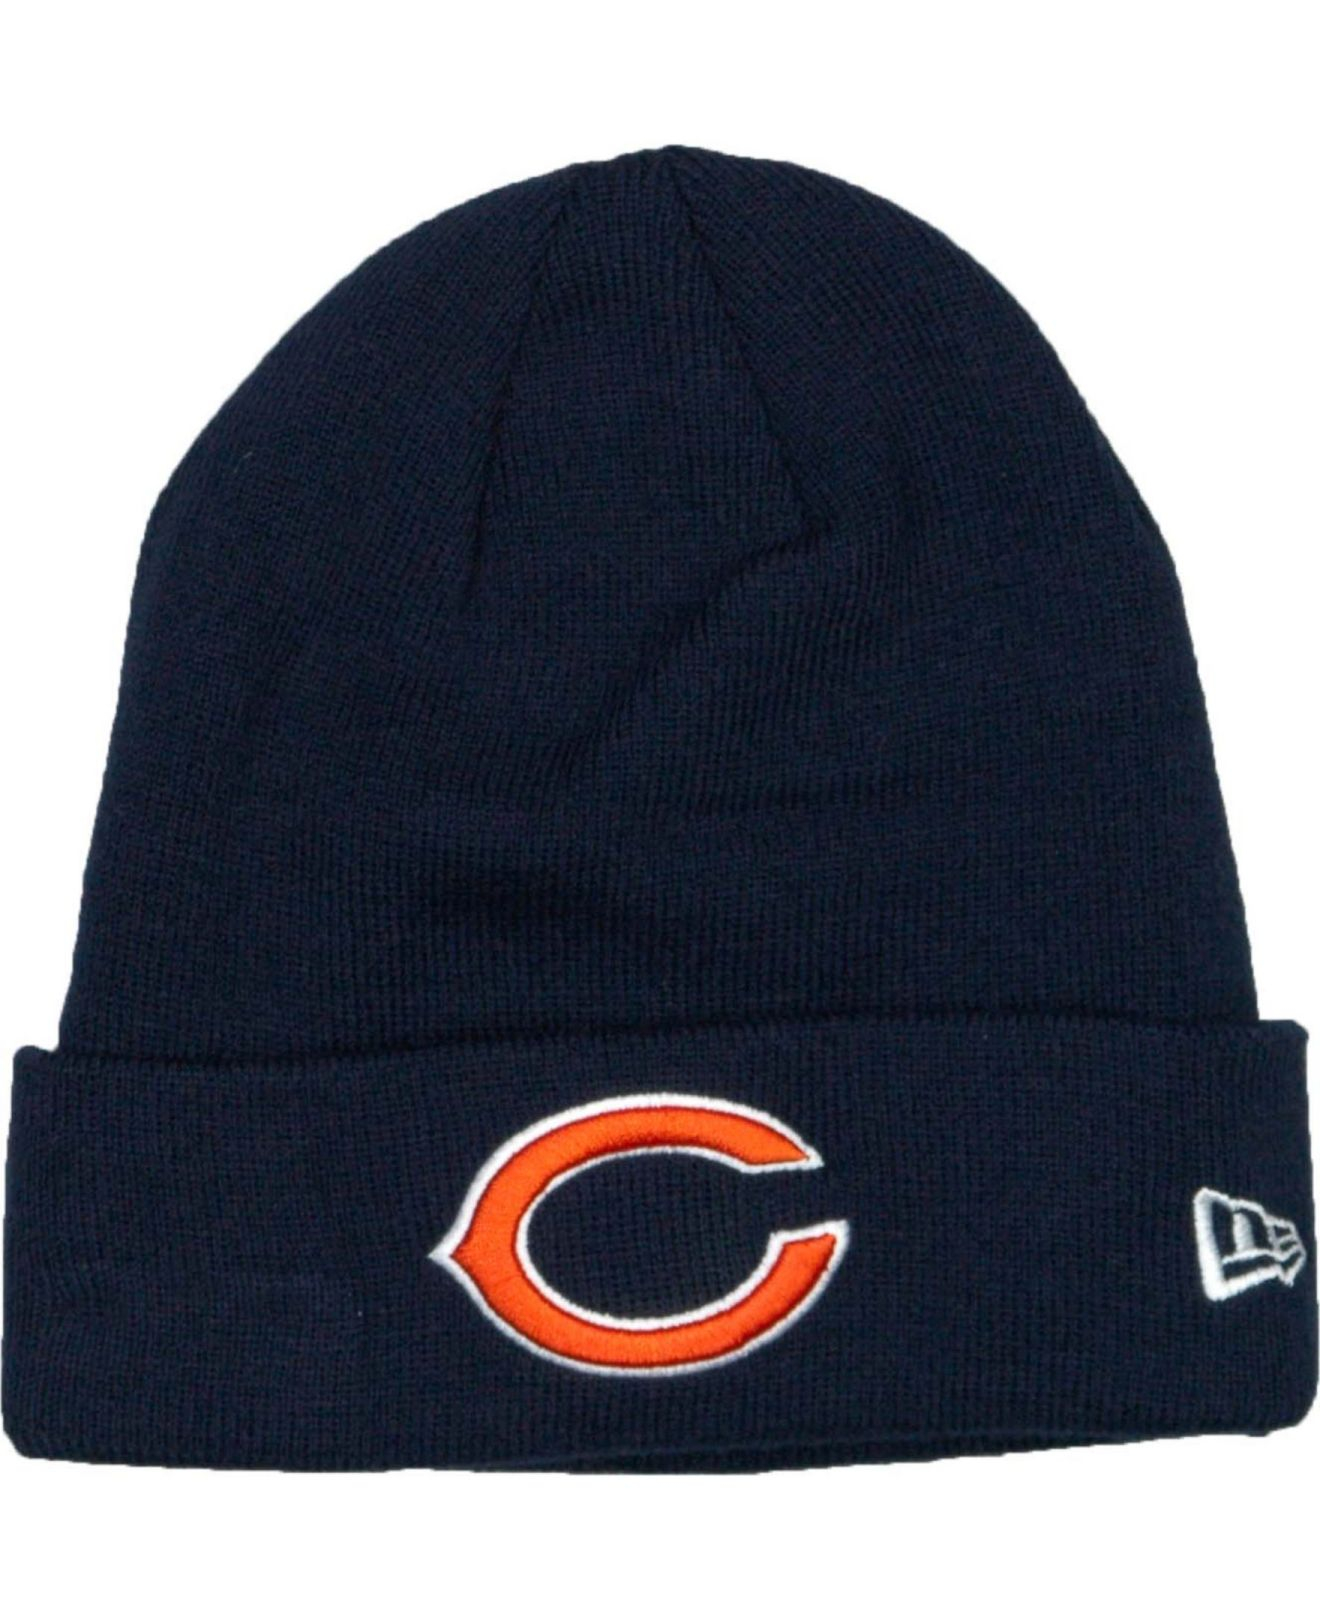 ktz chicago bears basic cuff knit hat in blue for men lyst. Black Bedroom Furniture Sets. Home Design Ideas